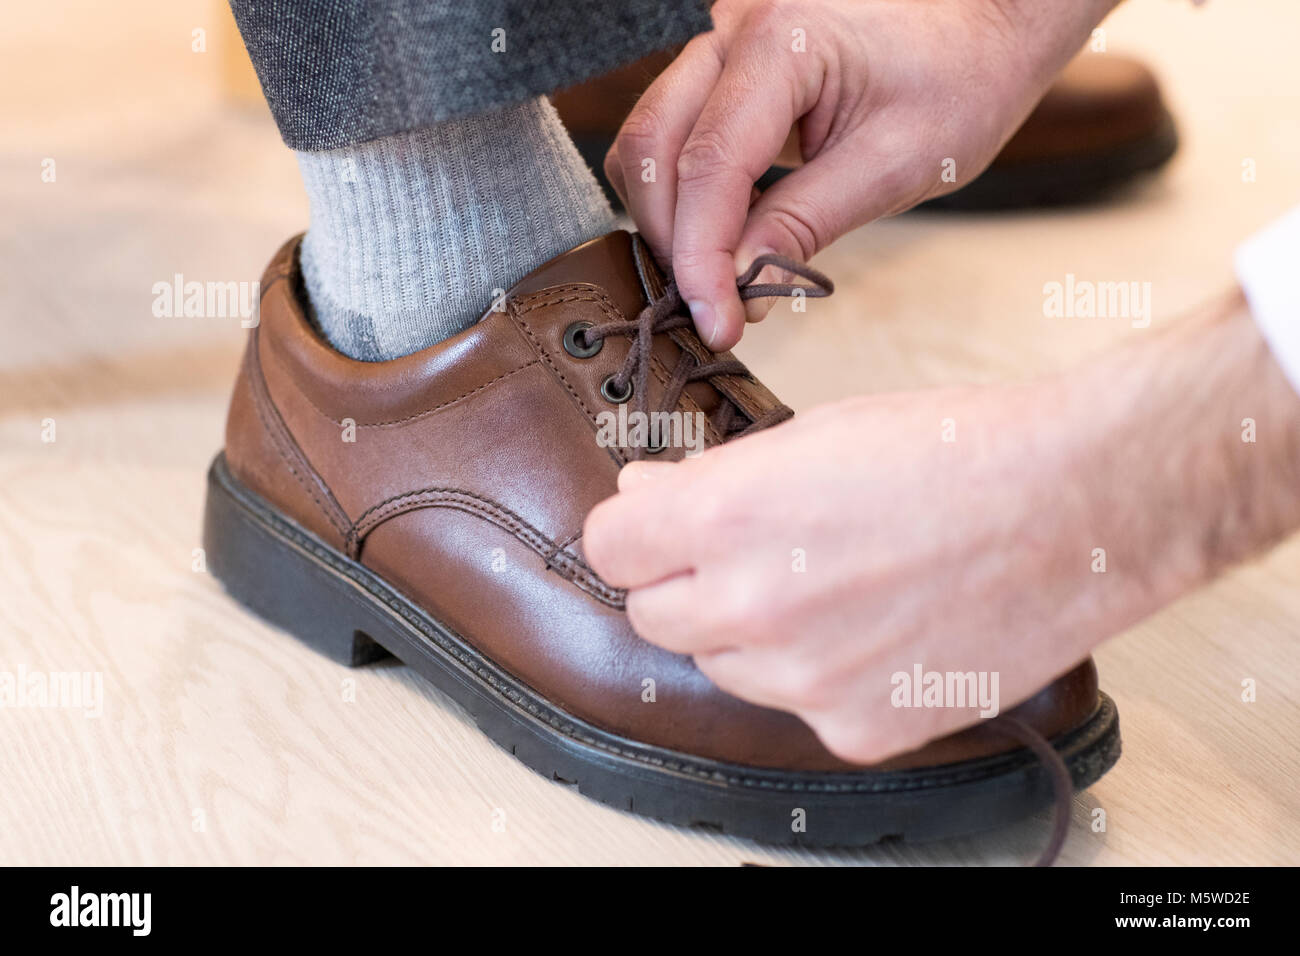 Close Up Of Adult Son Helping Senior Man Tie Shoelaces - Stock Image